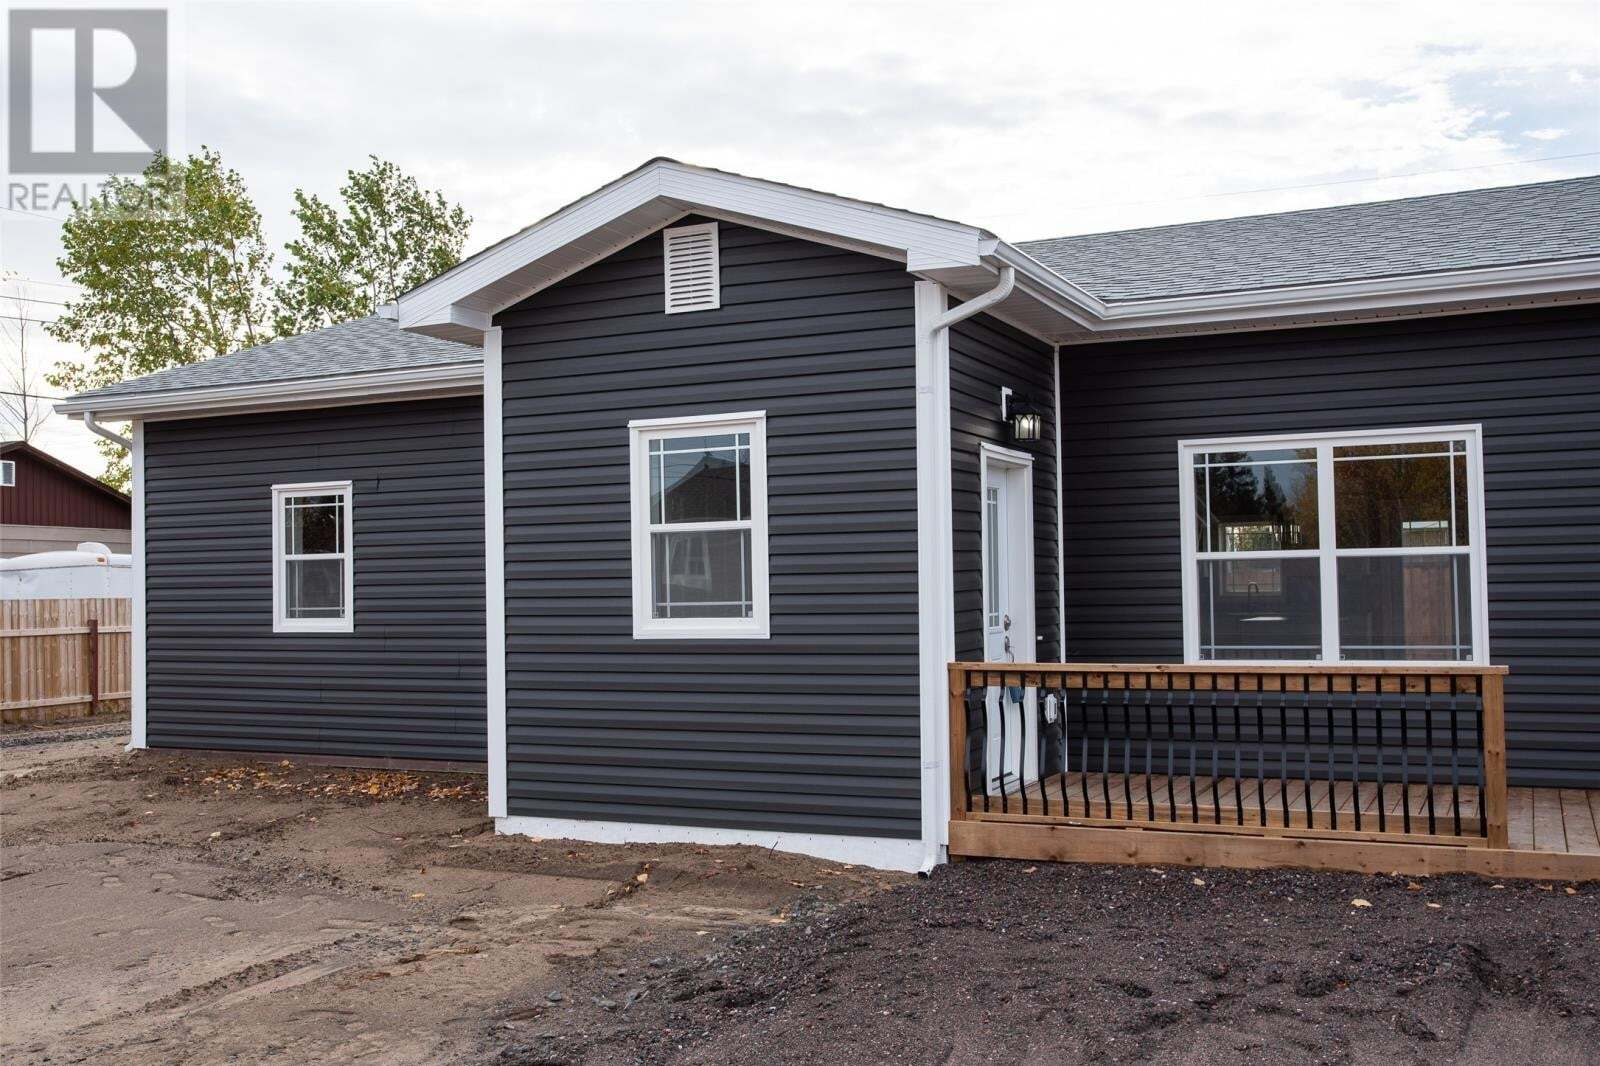 House for sale at 20 Bay Cres Happy Valley-goose Bay Newfoundland - MLS: 1222528